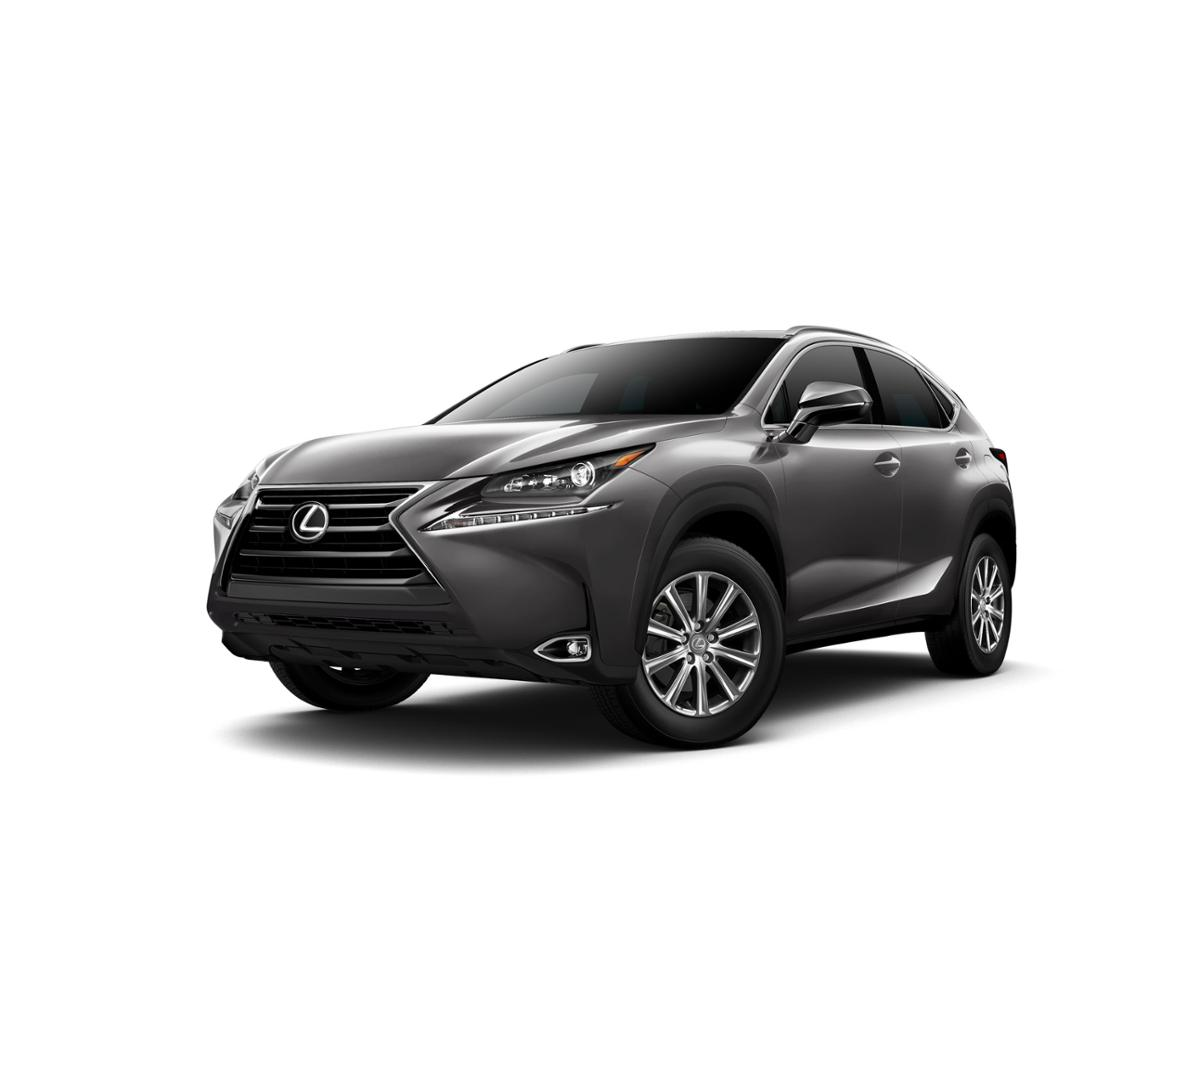 2017 Lexus NX Turbo Vehicle Photo in Dallas, TX 75209